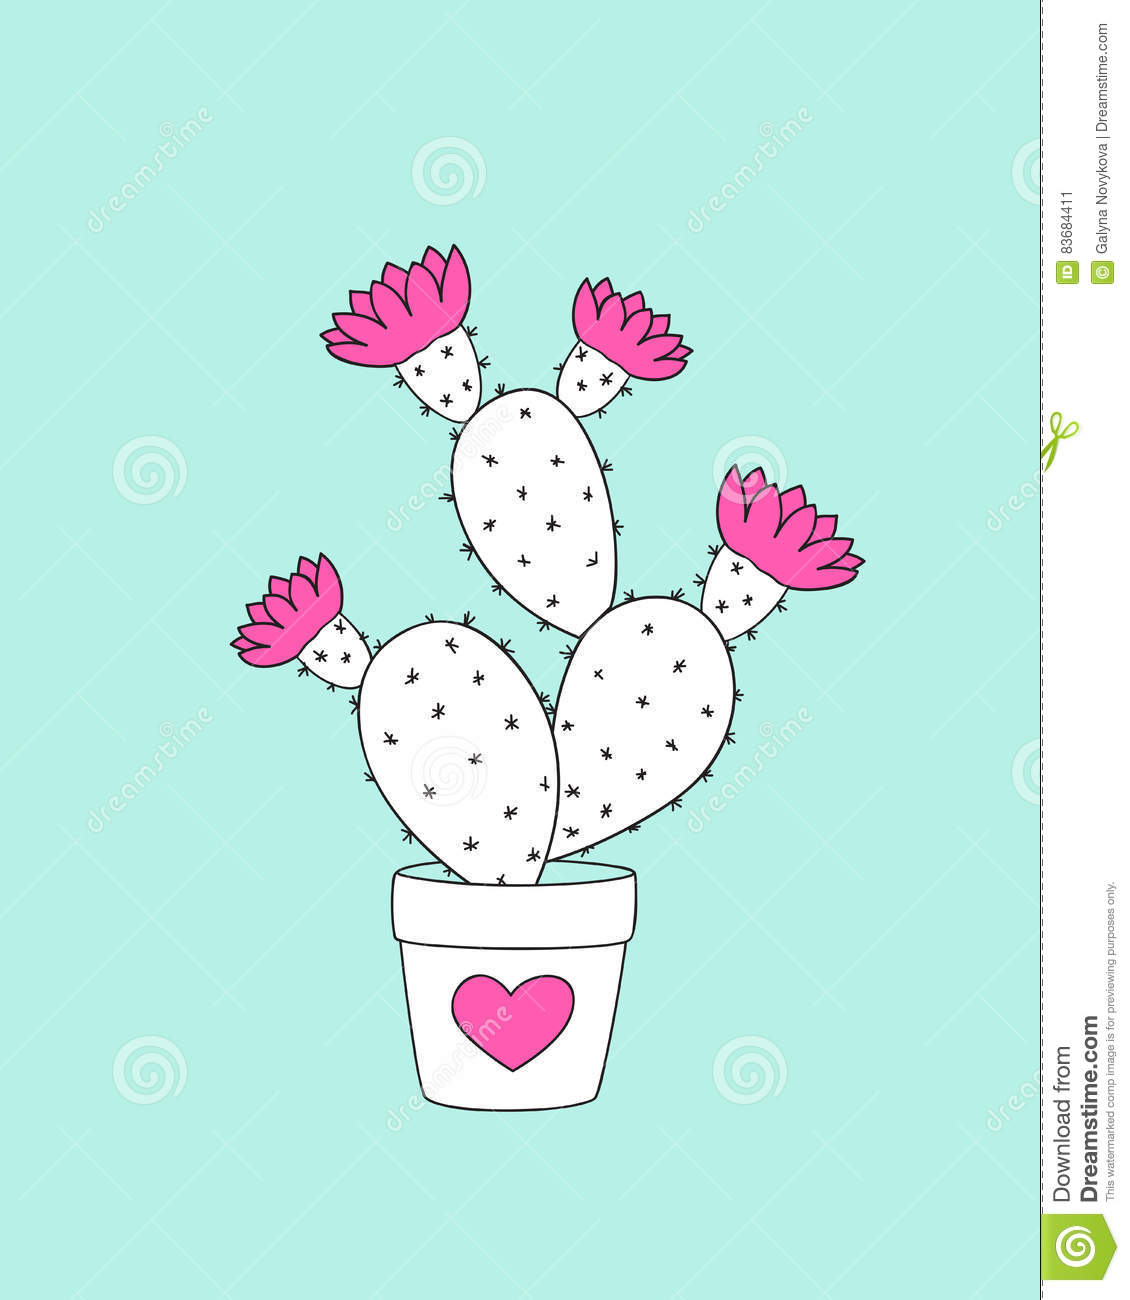 Cactus In The Flower Pot With Pink Heart Stock Vector